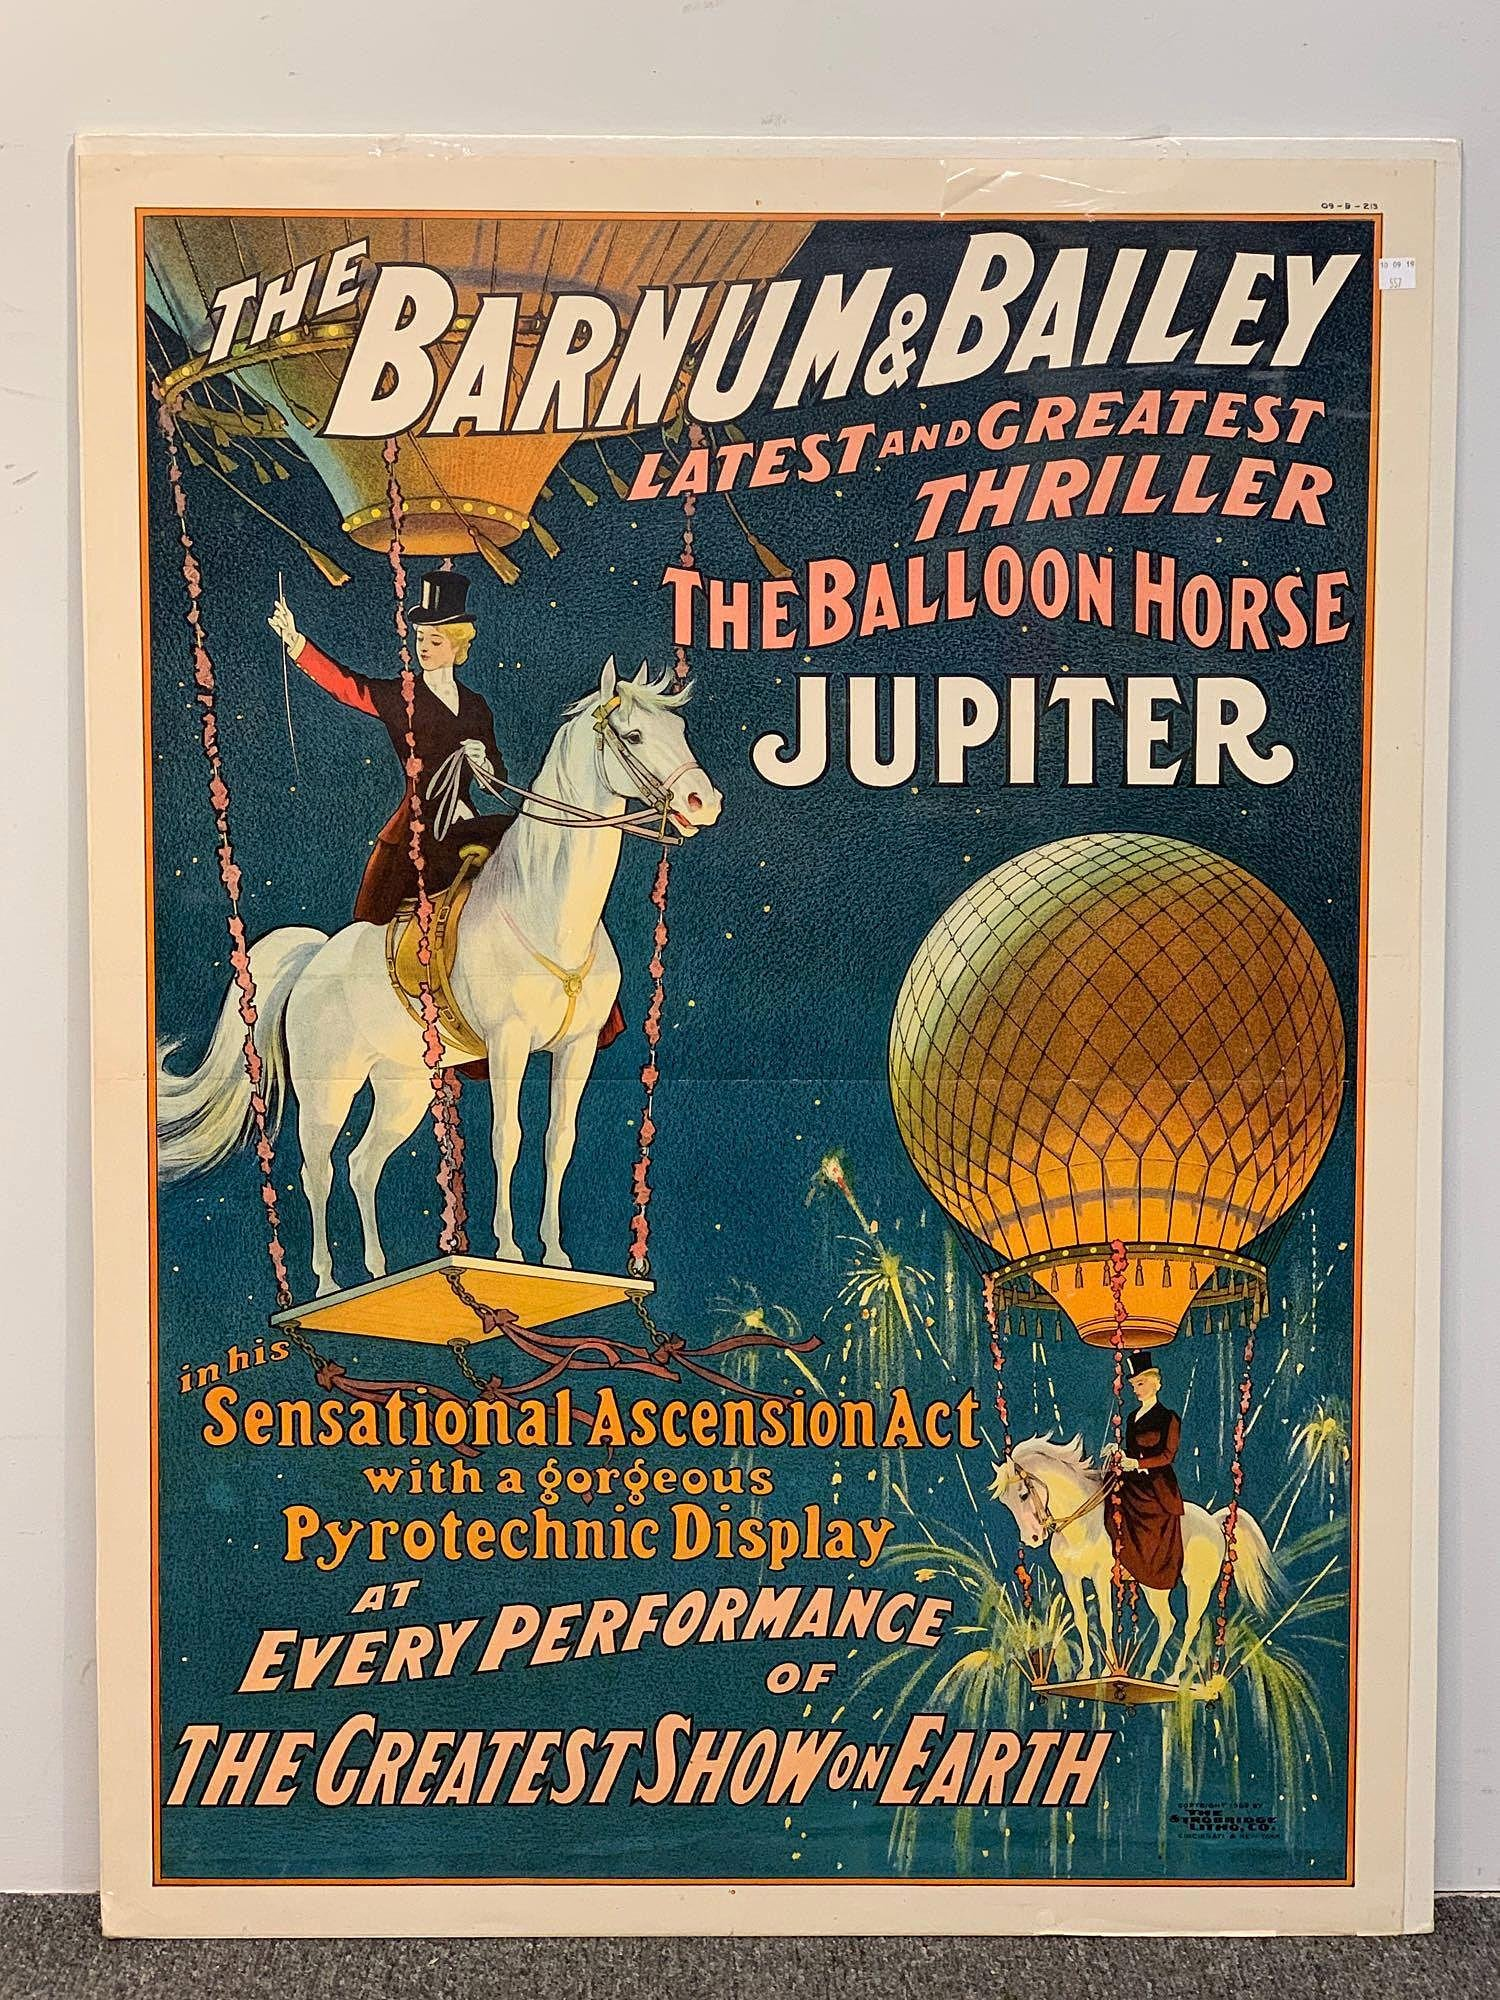 Barnum & Bailey Lithograph Poster